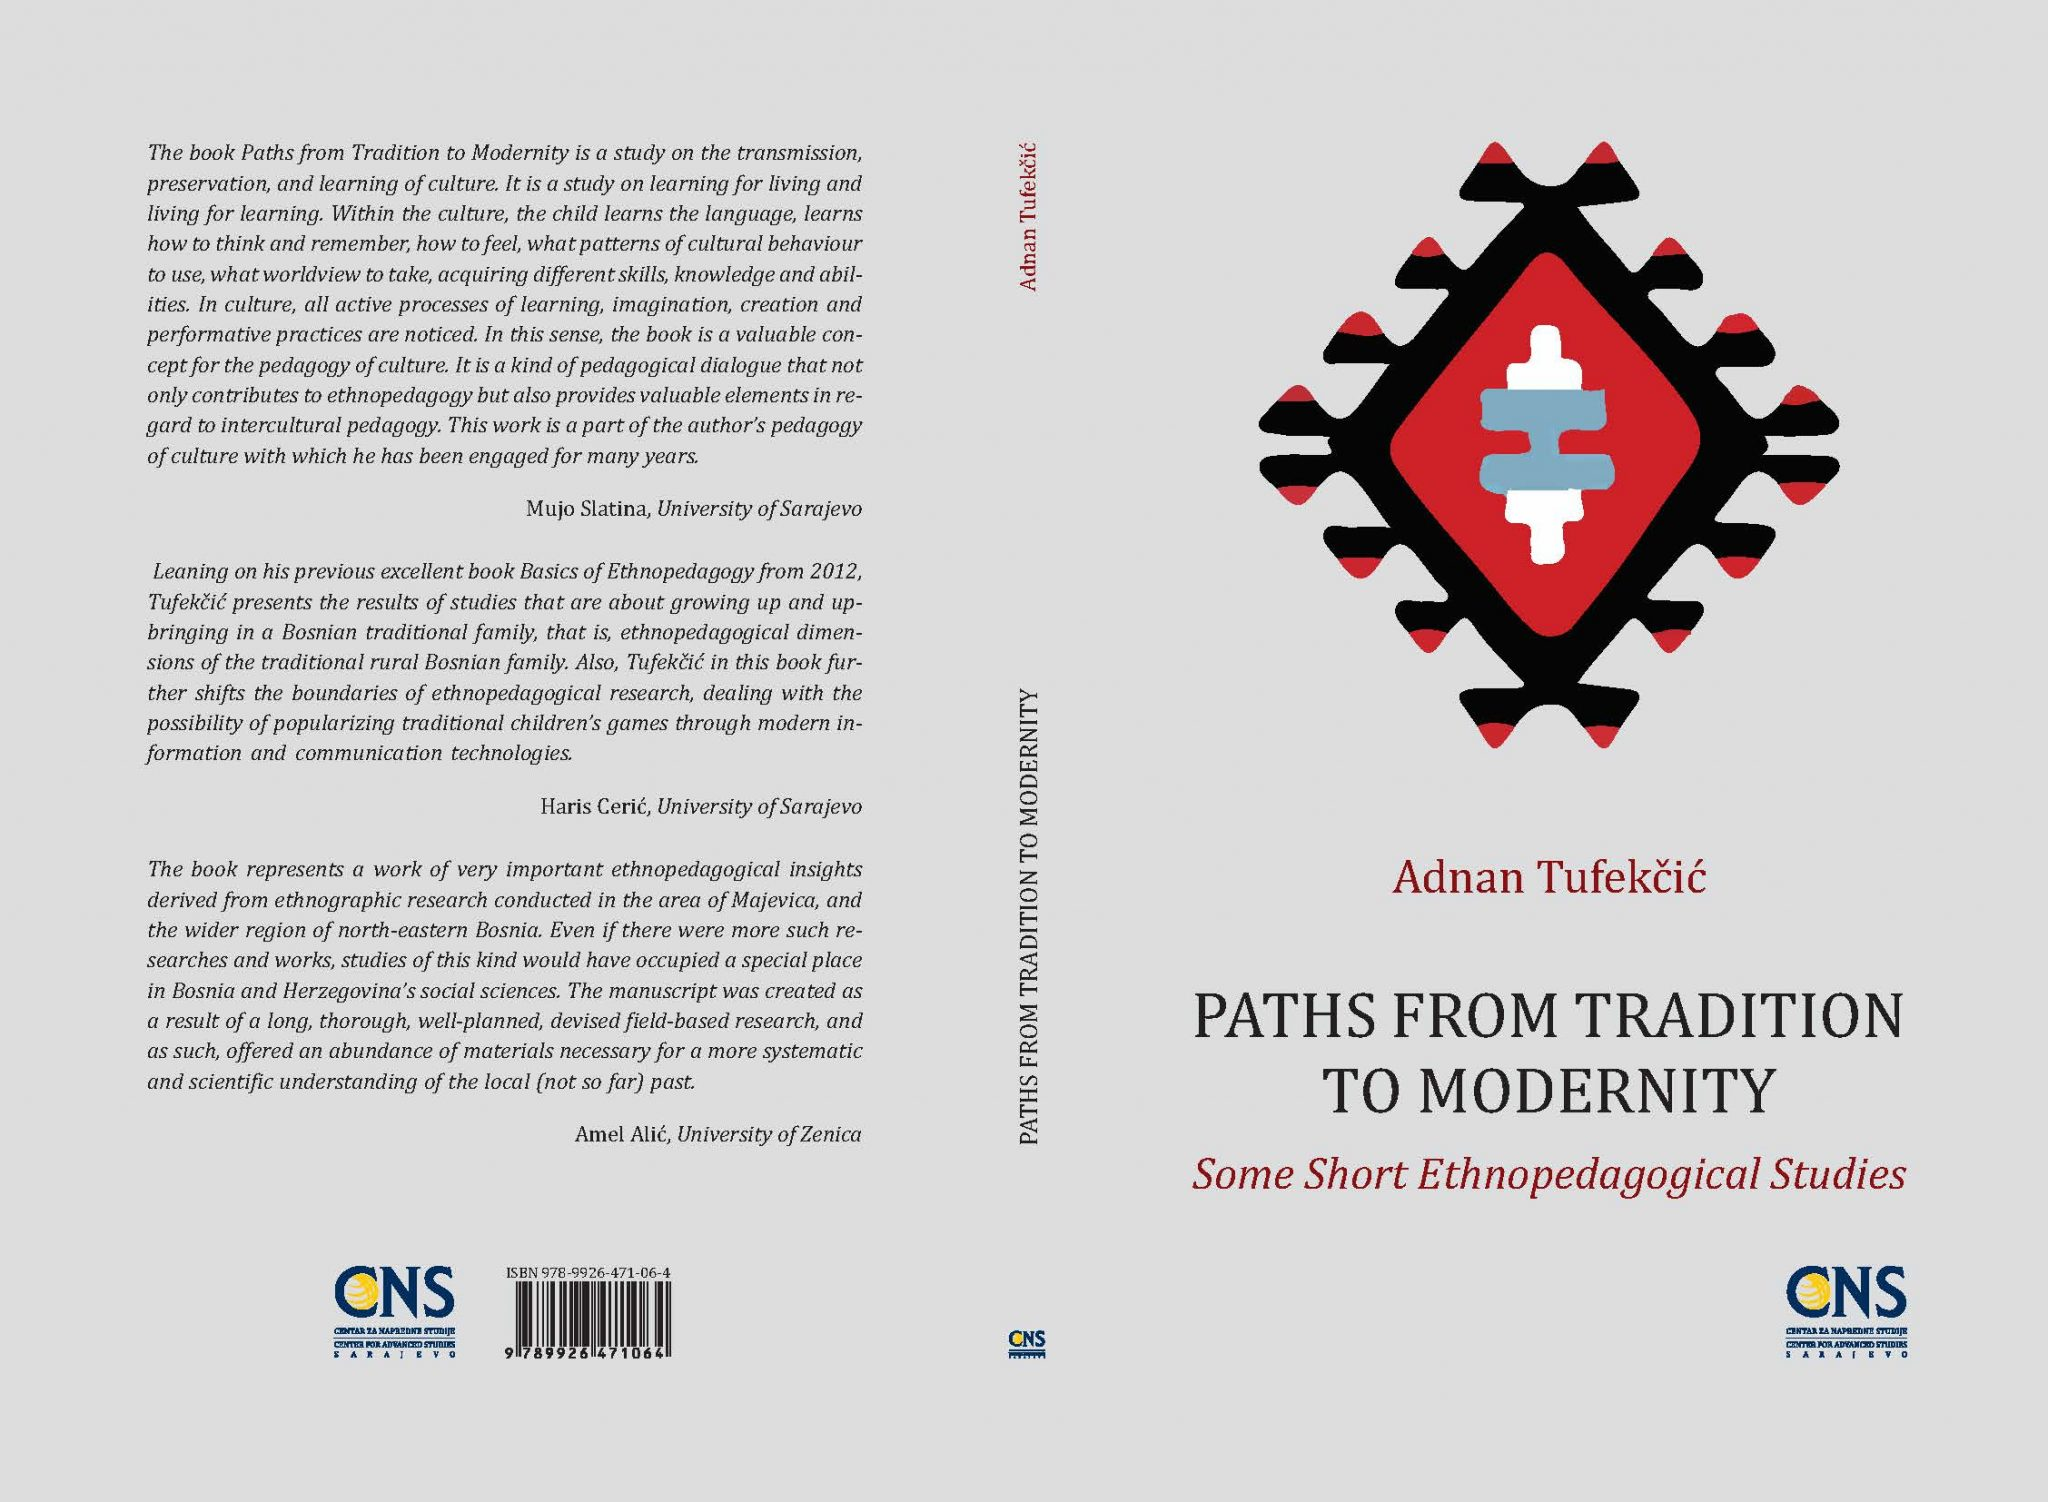 Paths from Tradition to Modernity